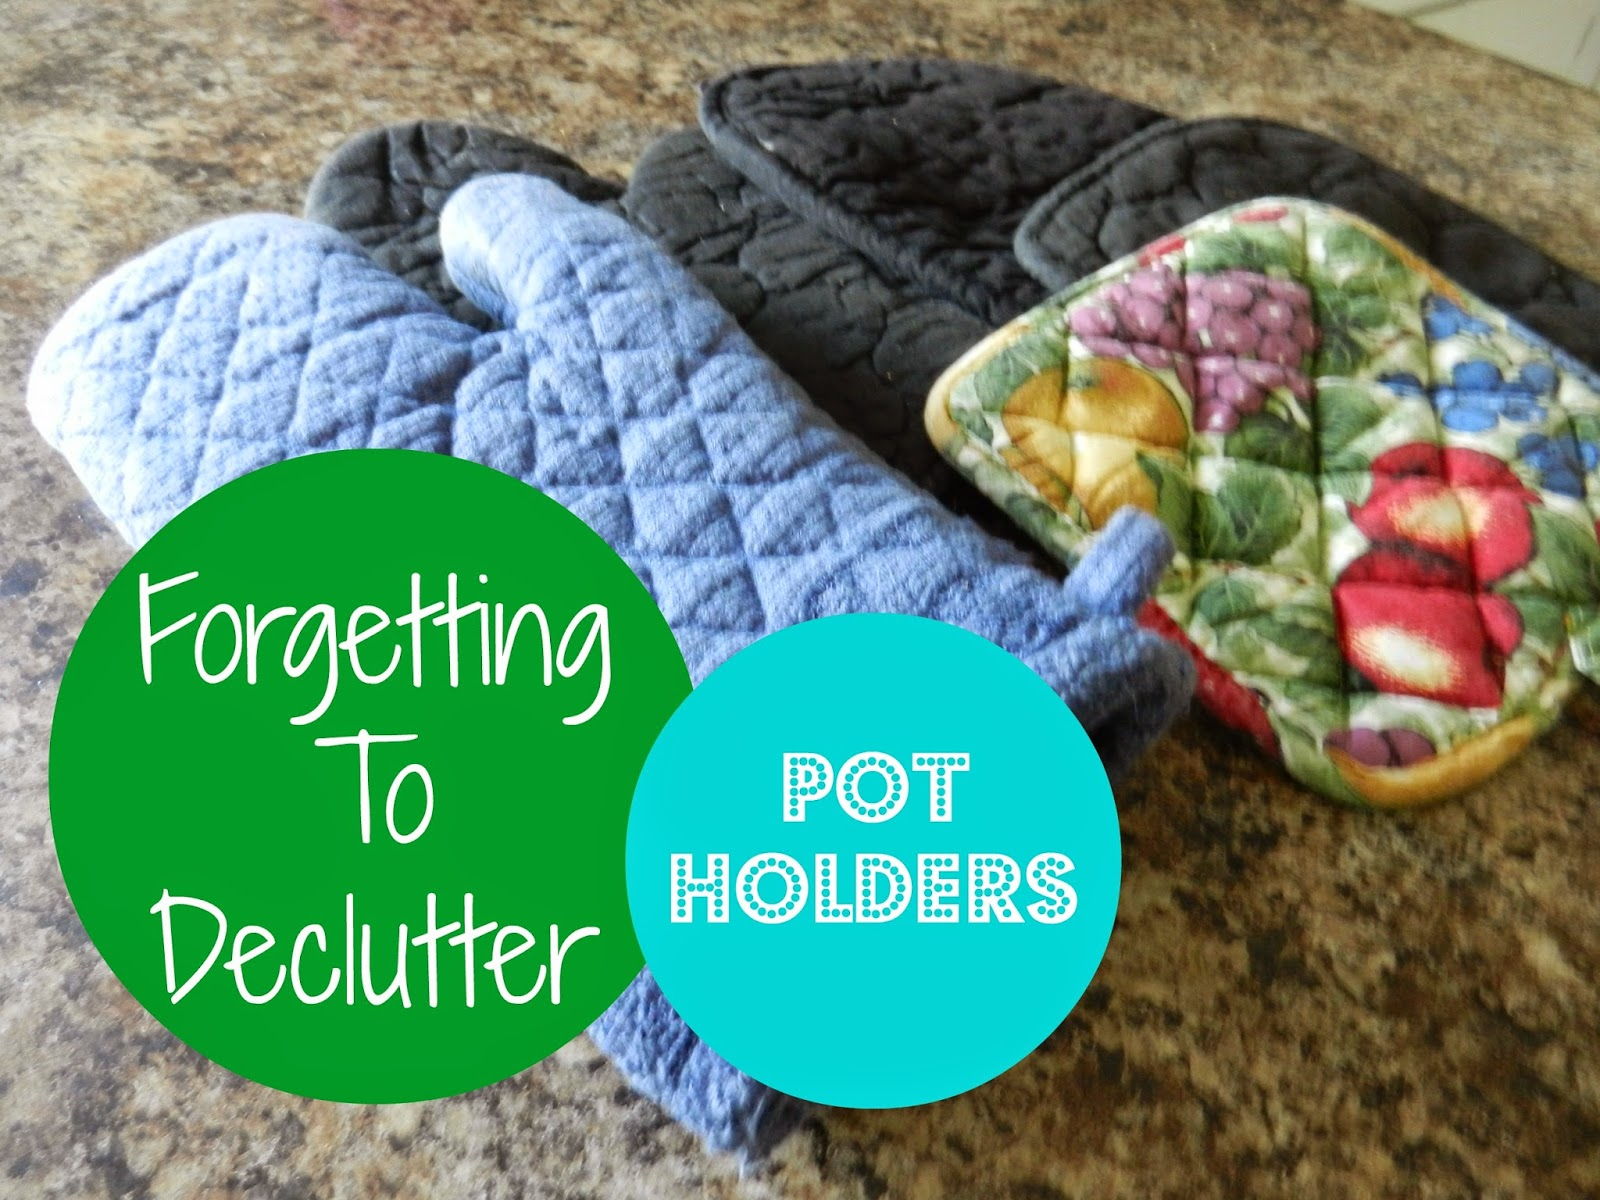 Forgetting To Declutter: Pot Holders